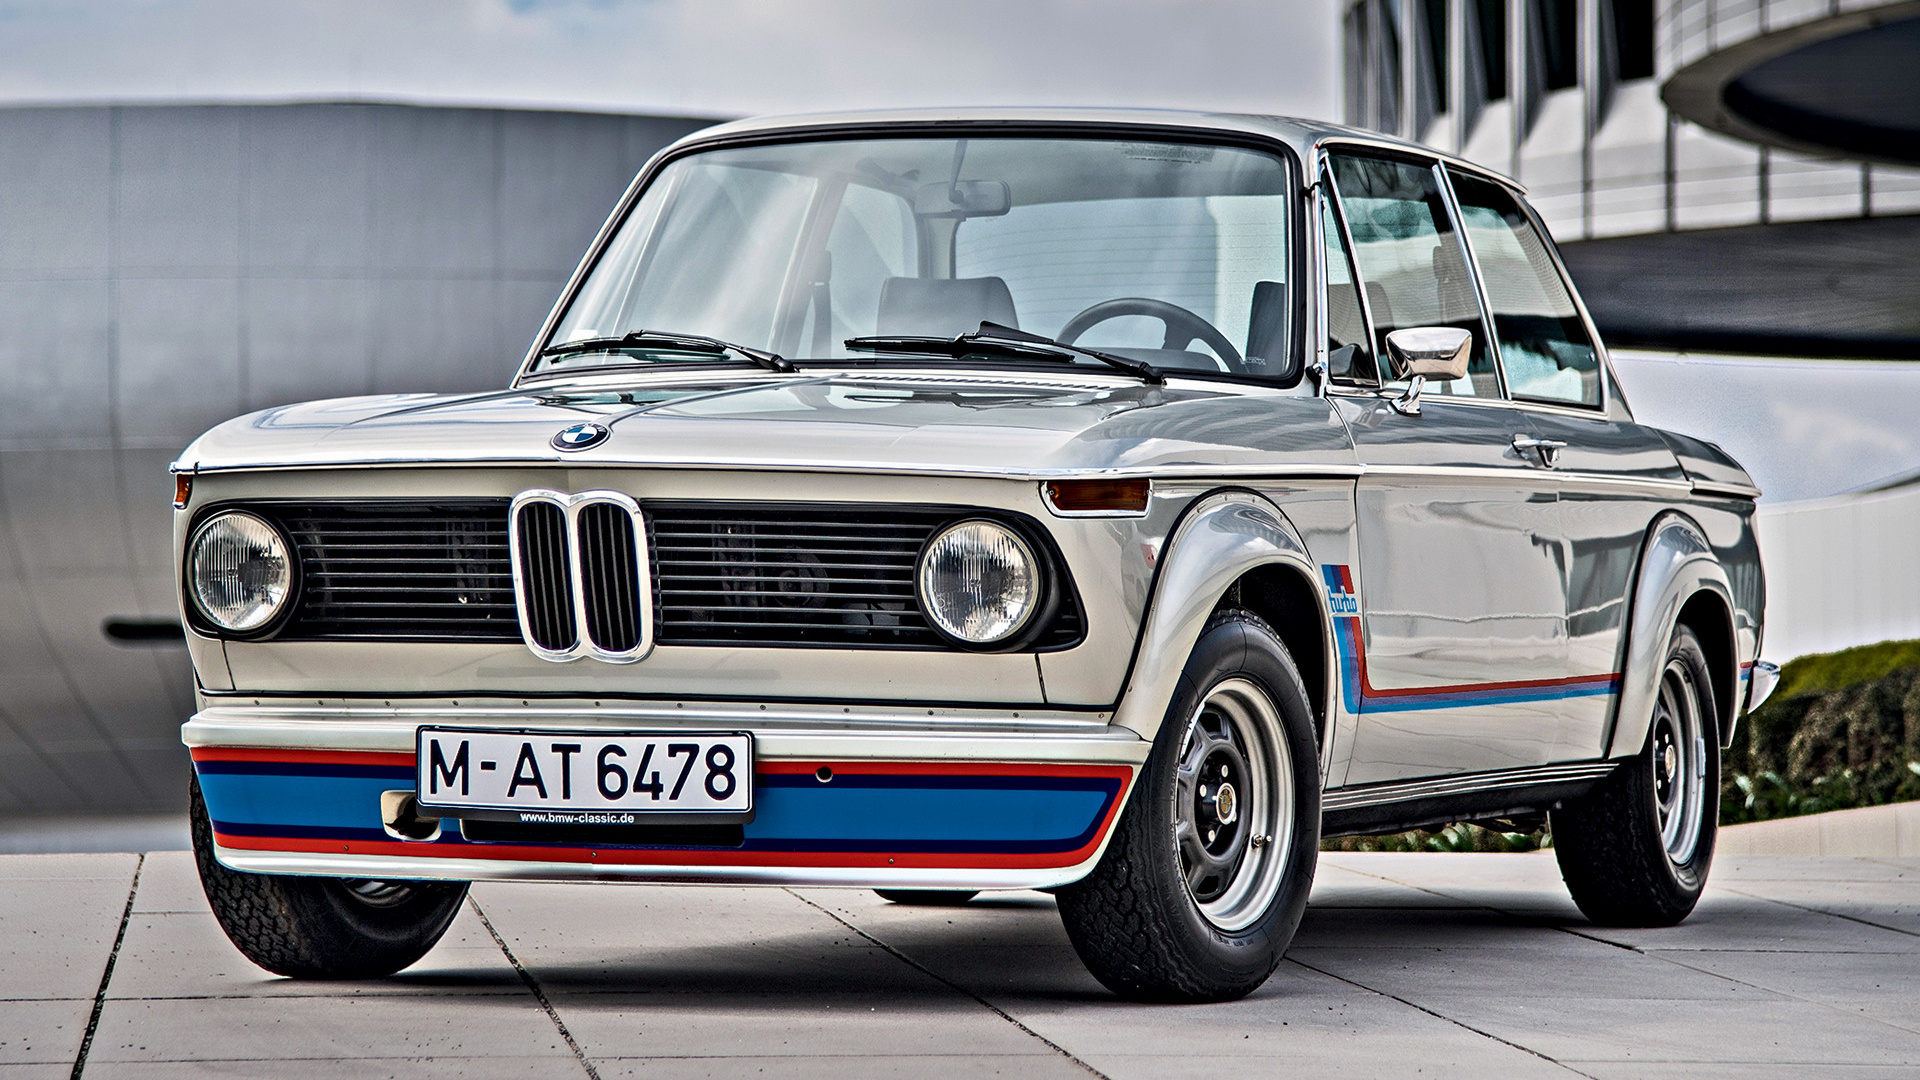 Bmw 2002 Wallpapers Top Free Bmw 2002 Backgrounds